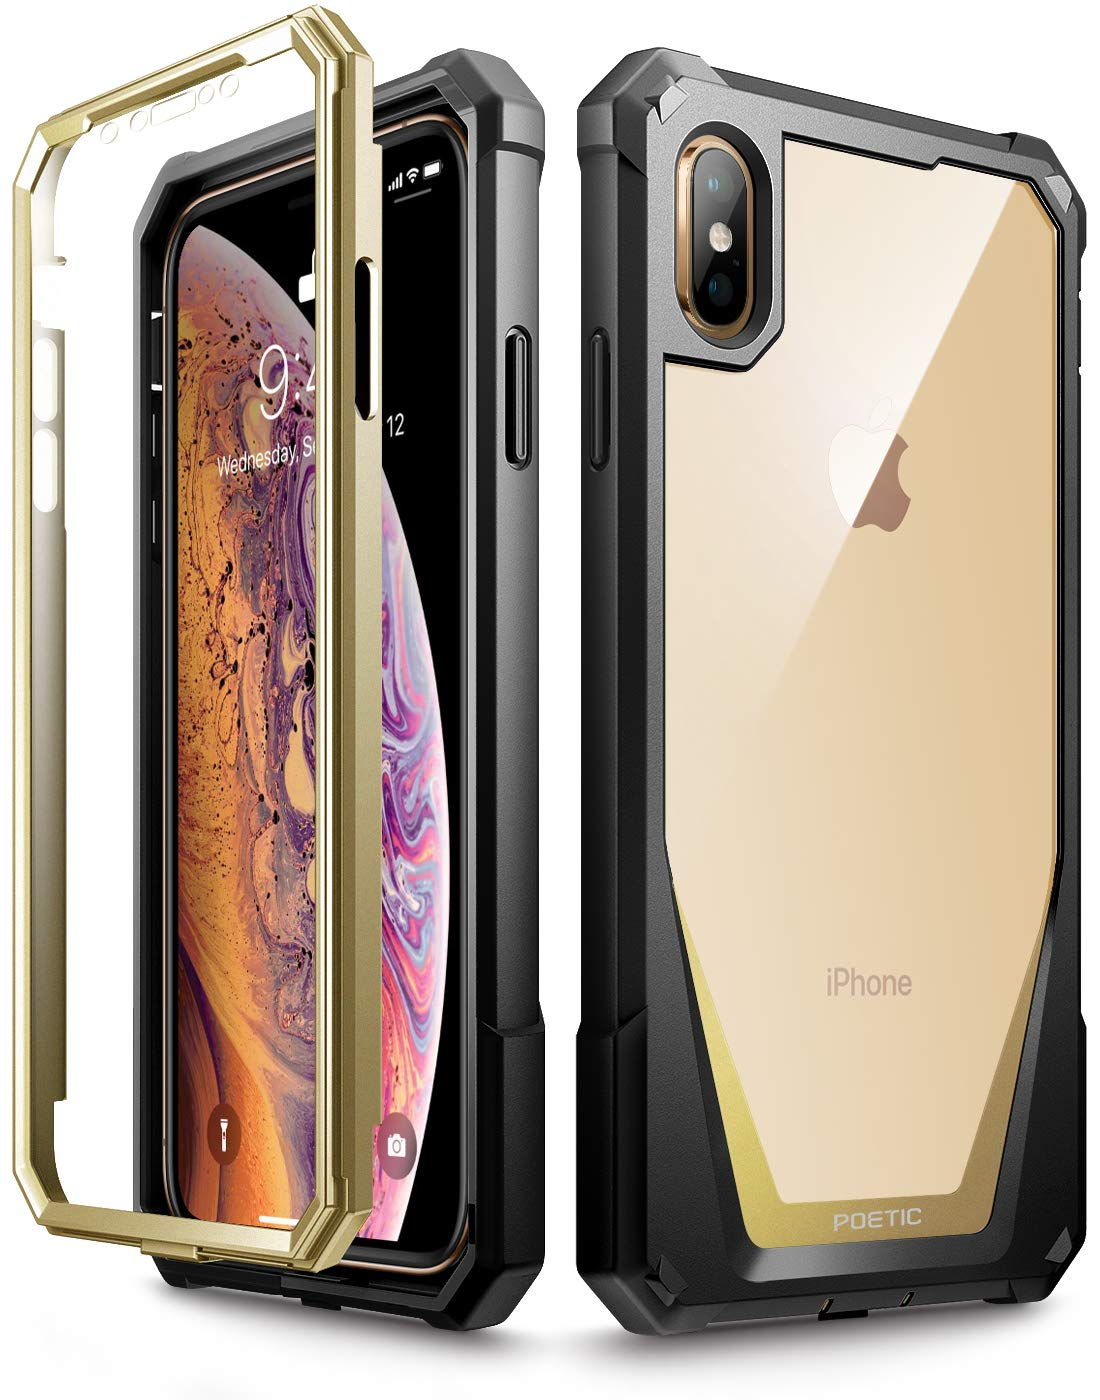 iPhone Xs Max Case, Poetic Guardian [Scratch Resistant Back] Full-Body Rugged Clear Hybrid Bumper Case with Built-in-Screen Protector for Apple iPhone Xs Max 6.5' OLED Display - Gold Guardian-iPhoneXsMax-Gold